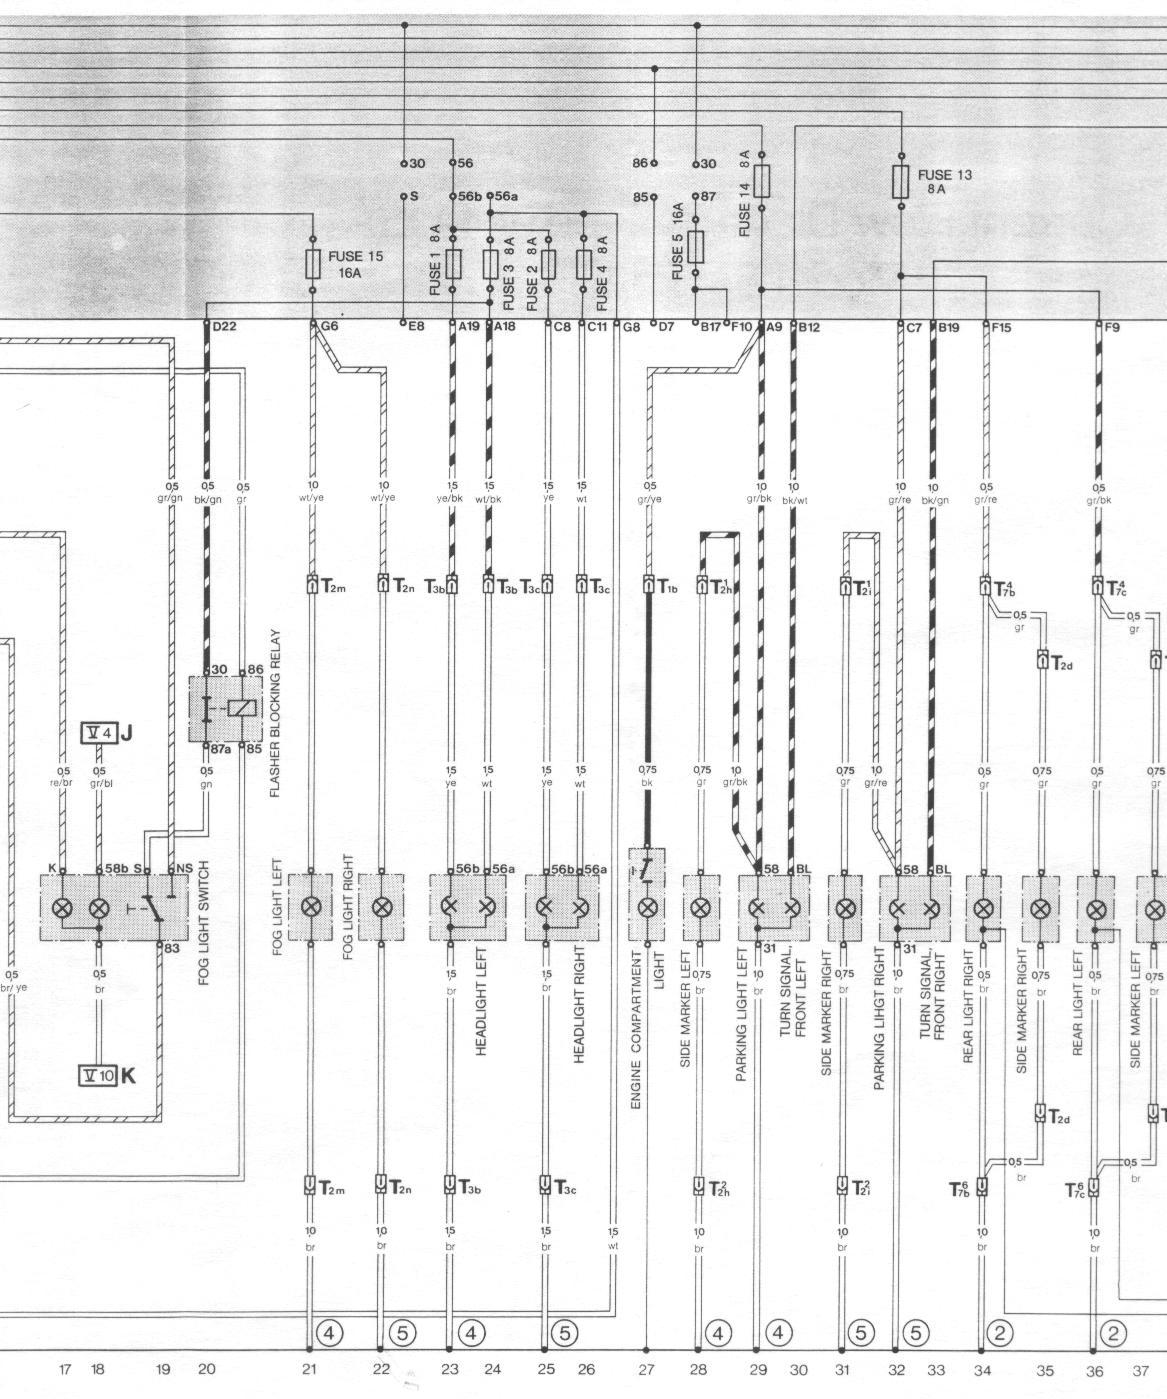 hight resolution of pelican parts porsche 924 944 electrical diagrams ferrari 308 wiring diagram porsche 944 wiring diagram